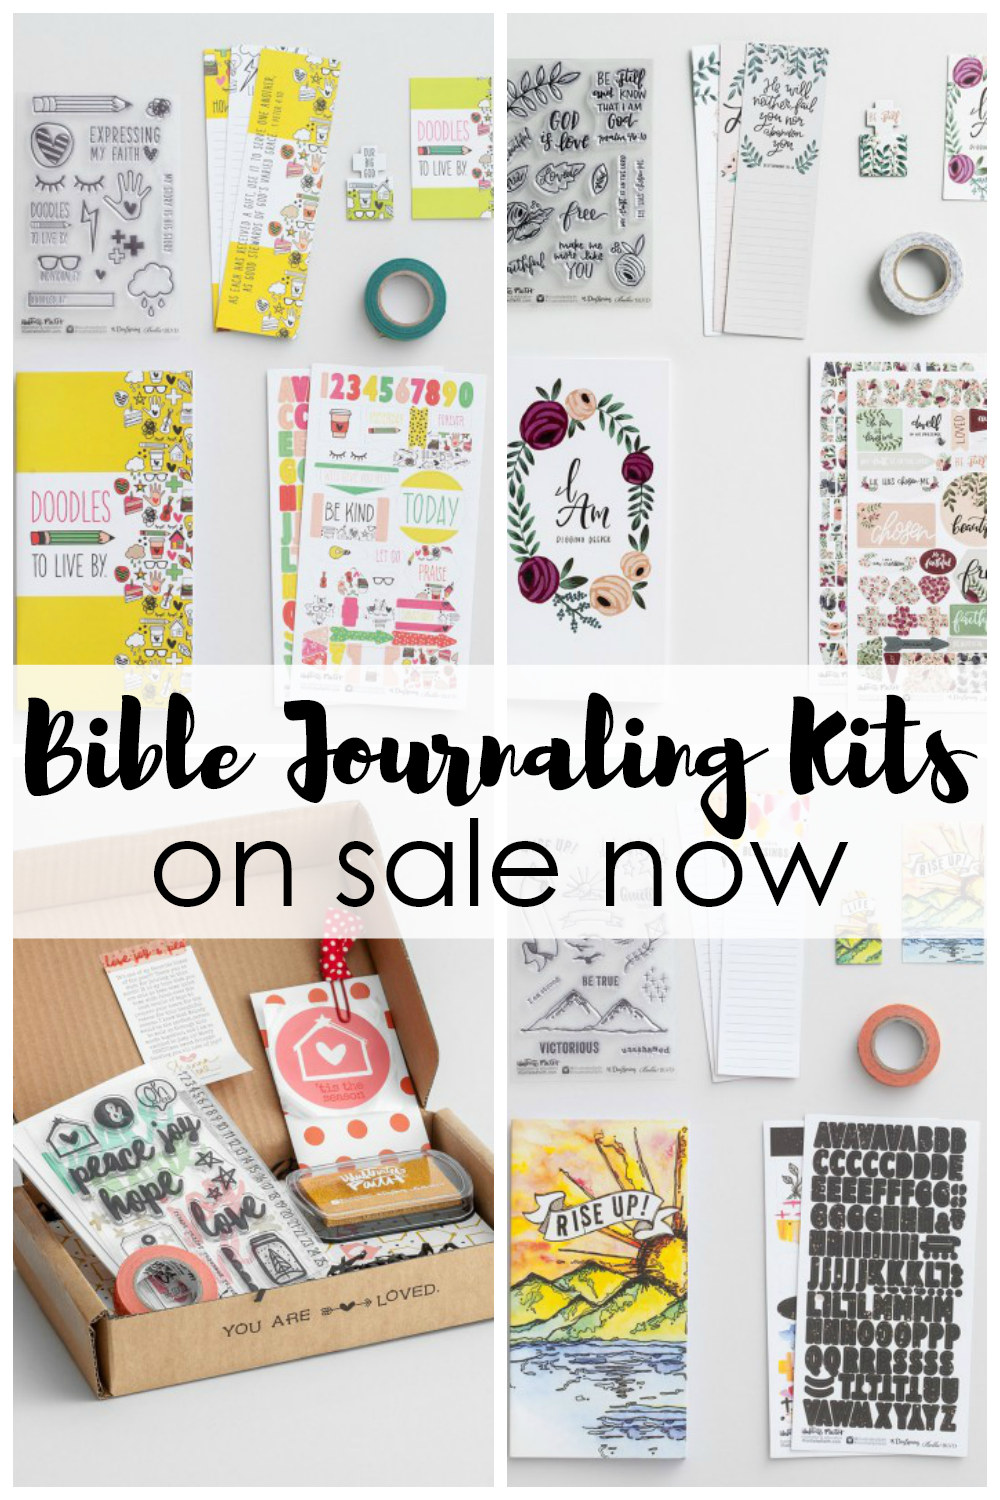 Bible journaling kits